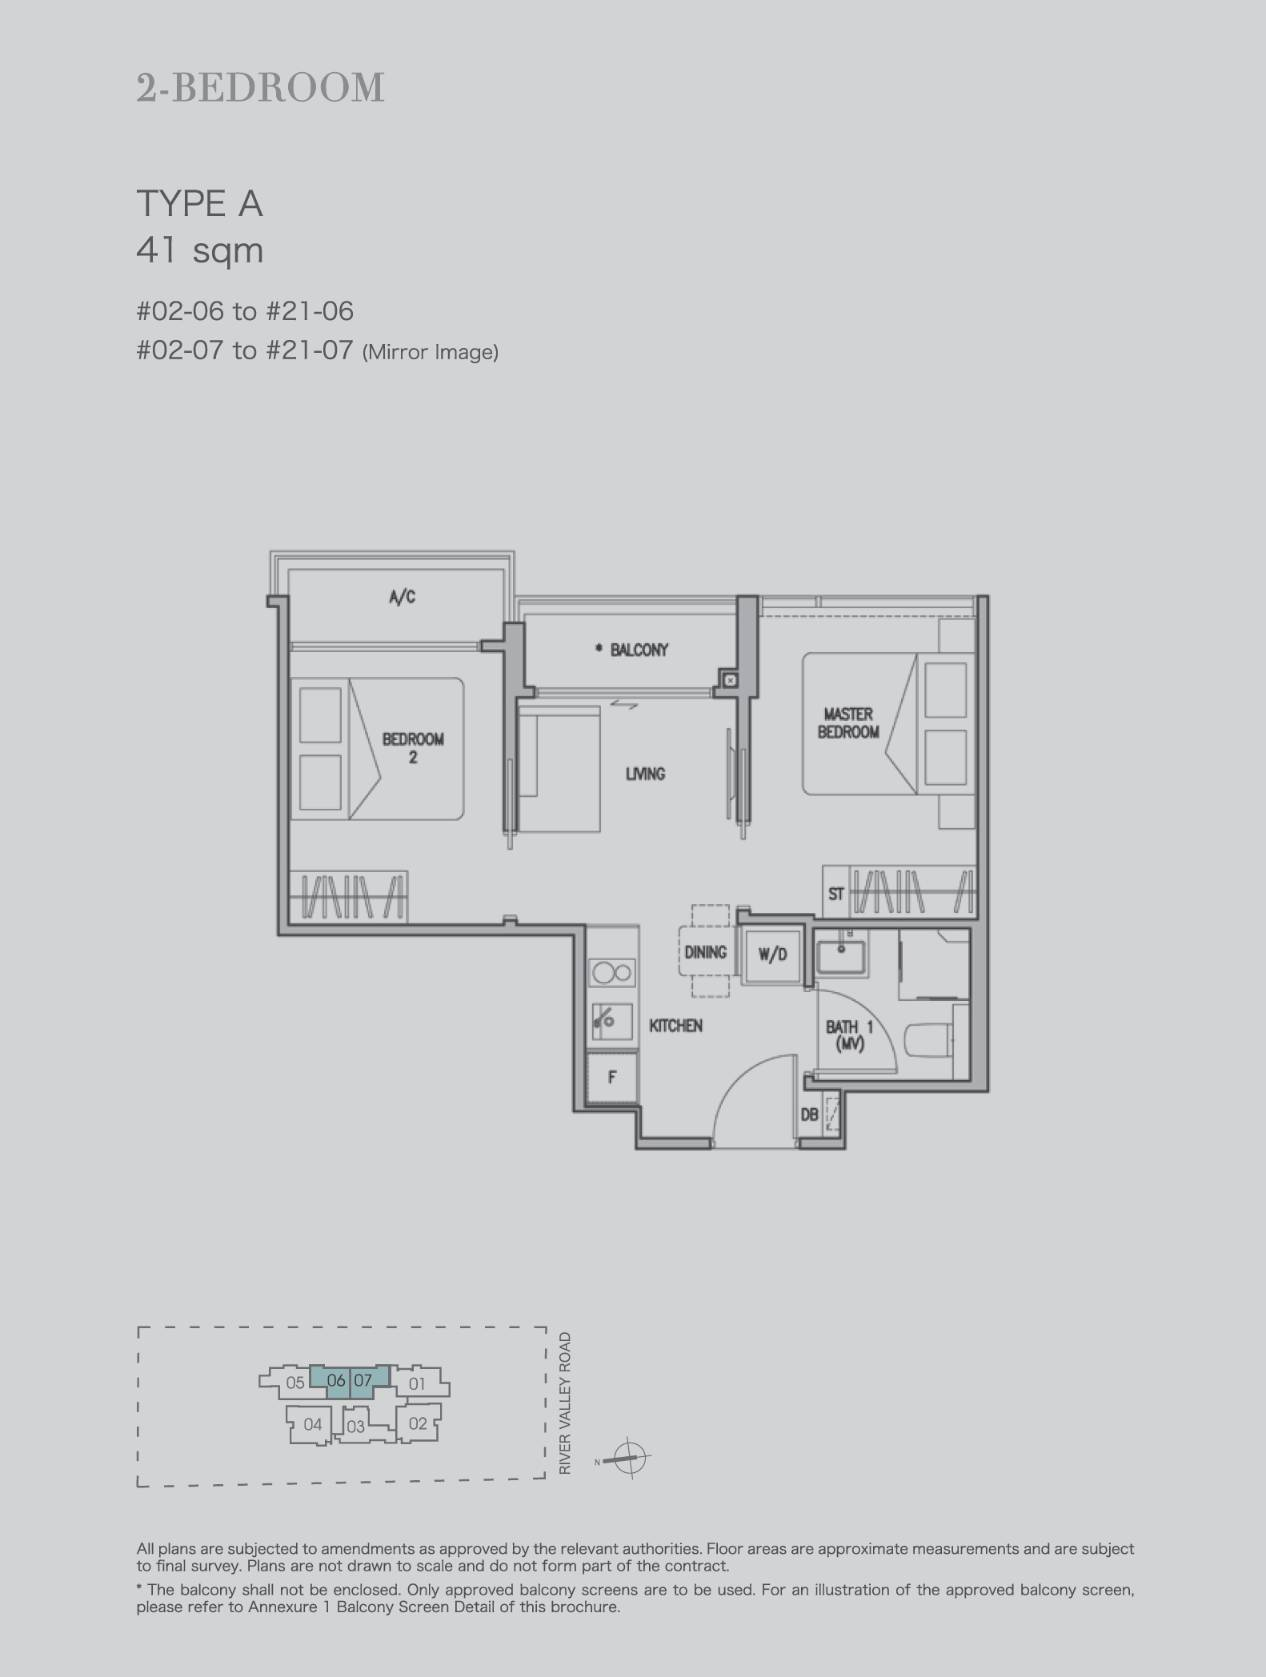 2 bedroom type A 41sqm stack 6 & 7